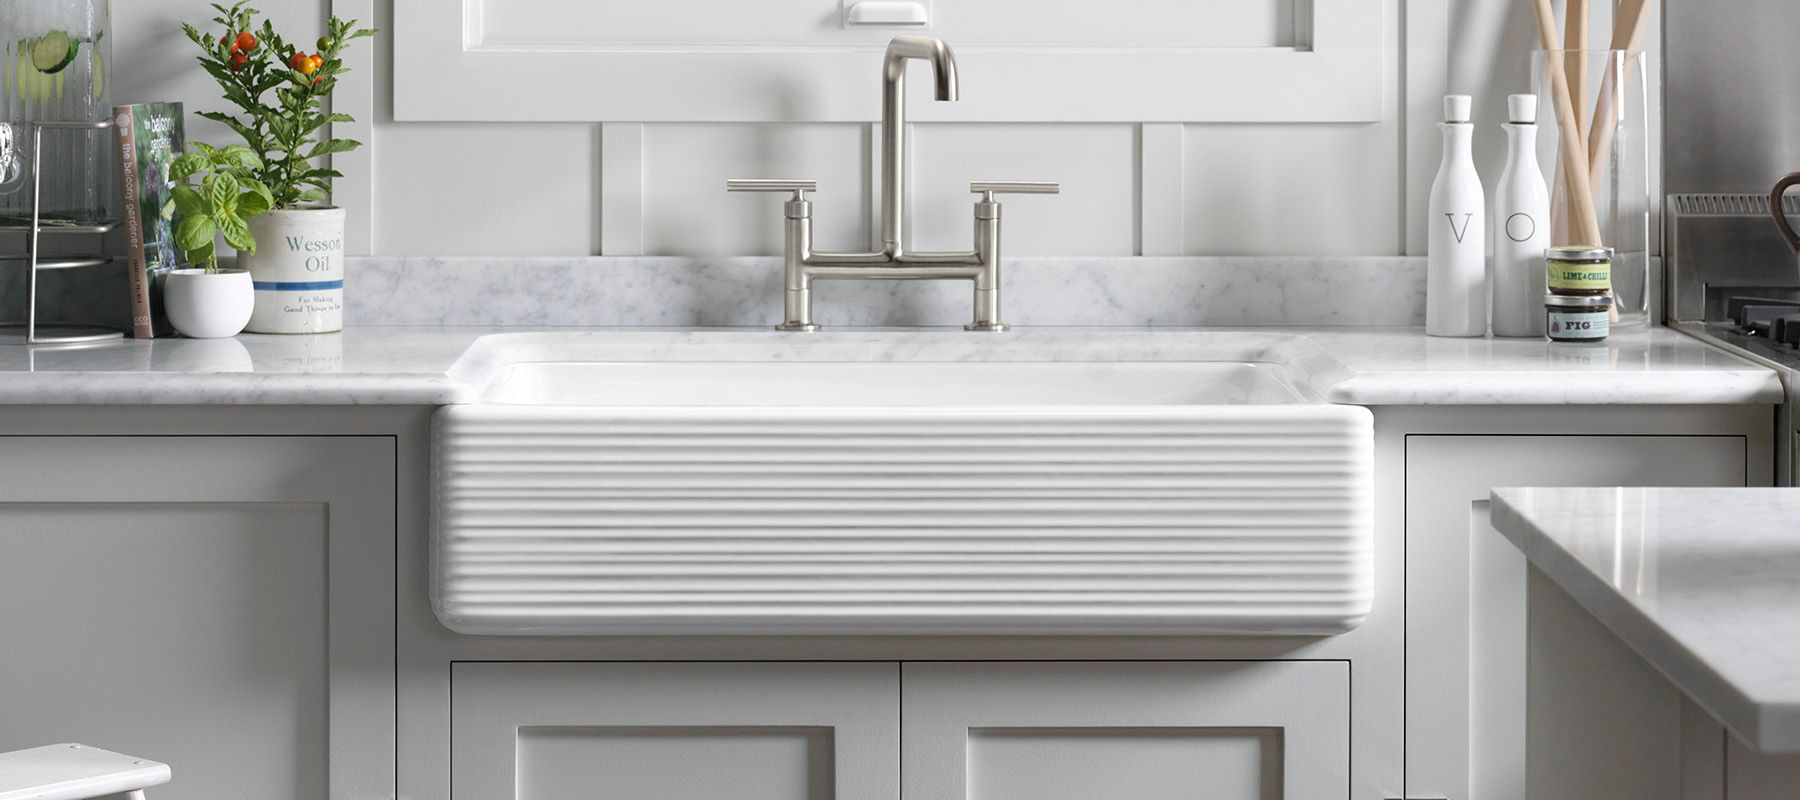 Kohler Stainless Steel Kitchen Sinks stainless steel kitchen sinks | kitchen | kohler